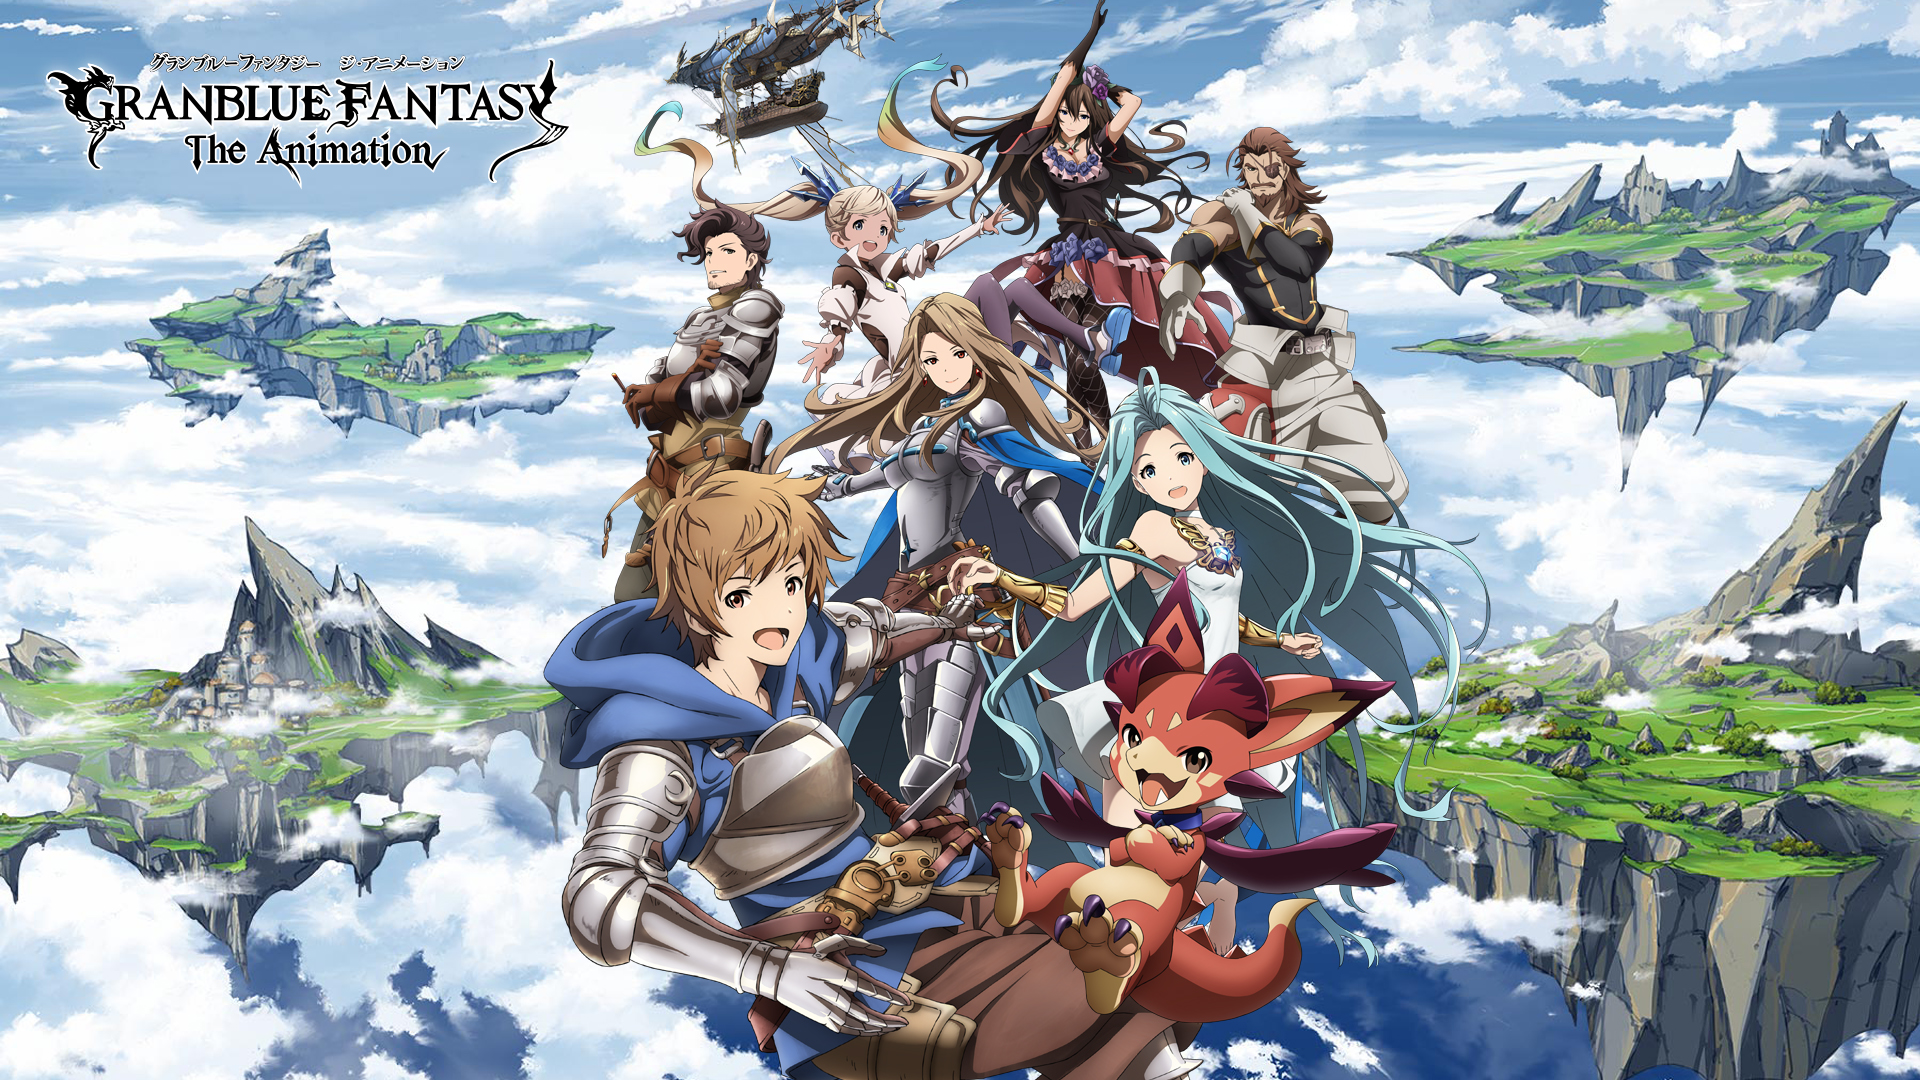 Granblue Fantasy The Animation Wallpaper By Ab 77 On Deviantart